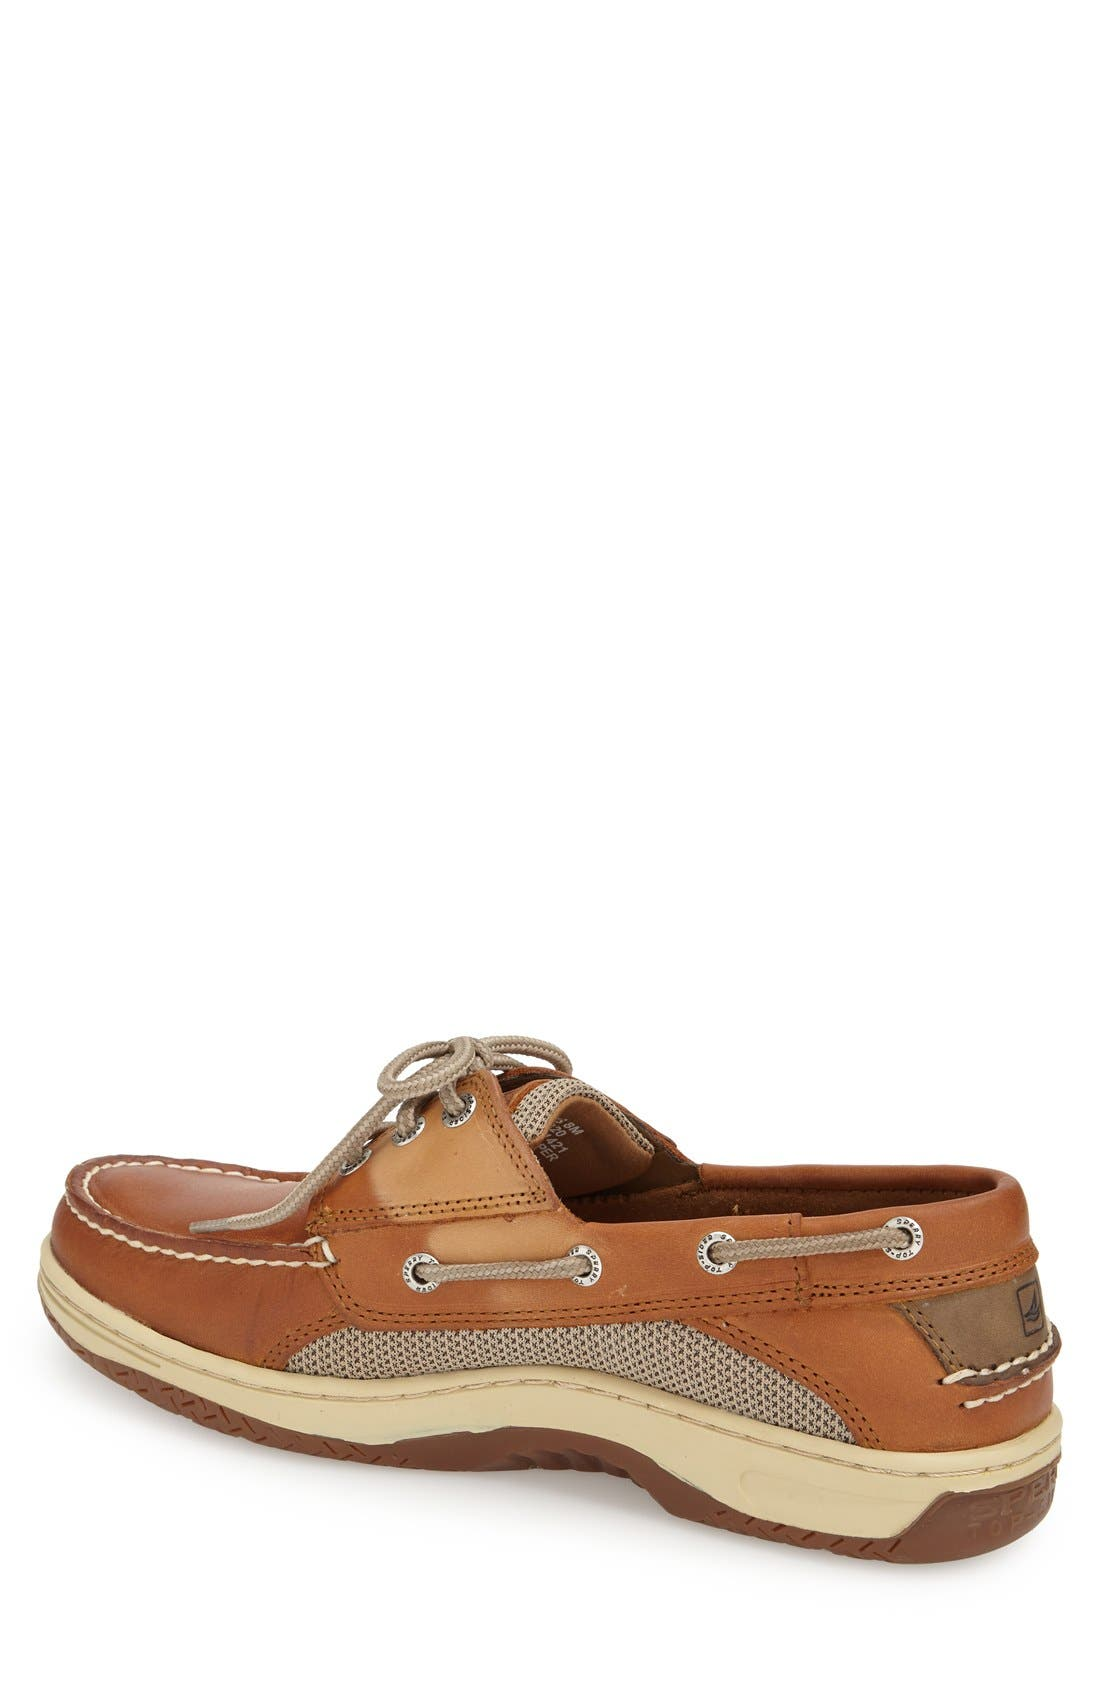 Alternate Image 2  - Sperry 'Billfish' Boat Shoe (Men)